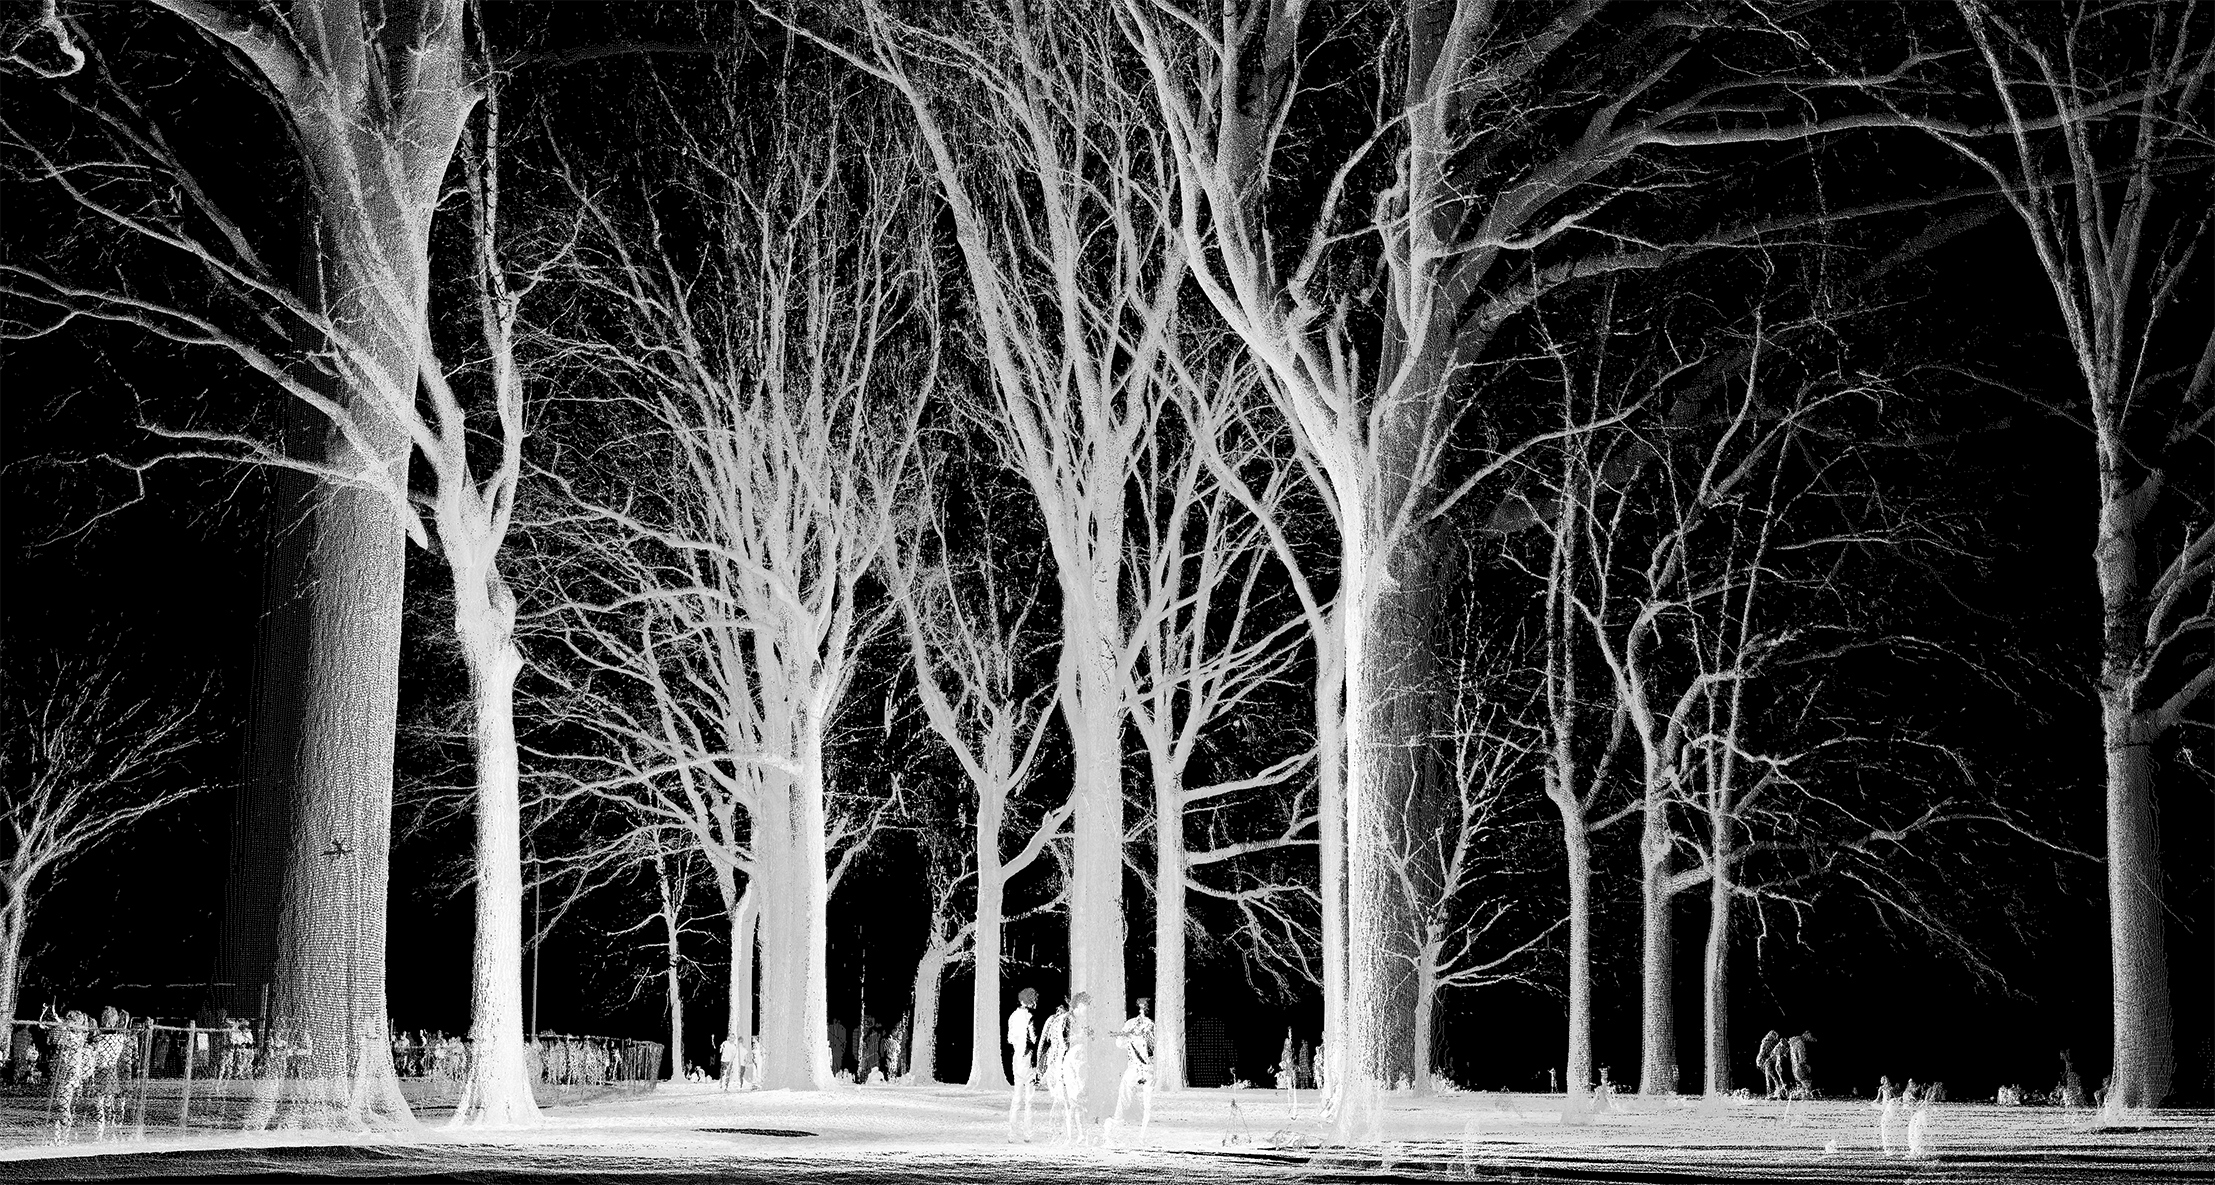 mynd-workshop-central-park-sheep-meadow-trees-3D-laser-scanning-point-cloud-new-york.jpg